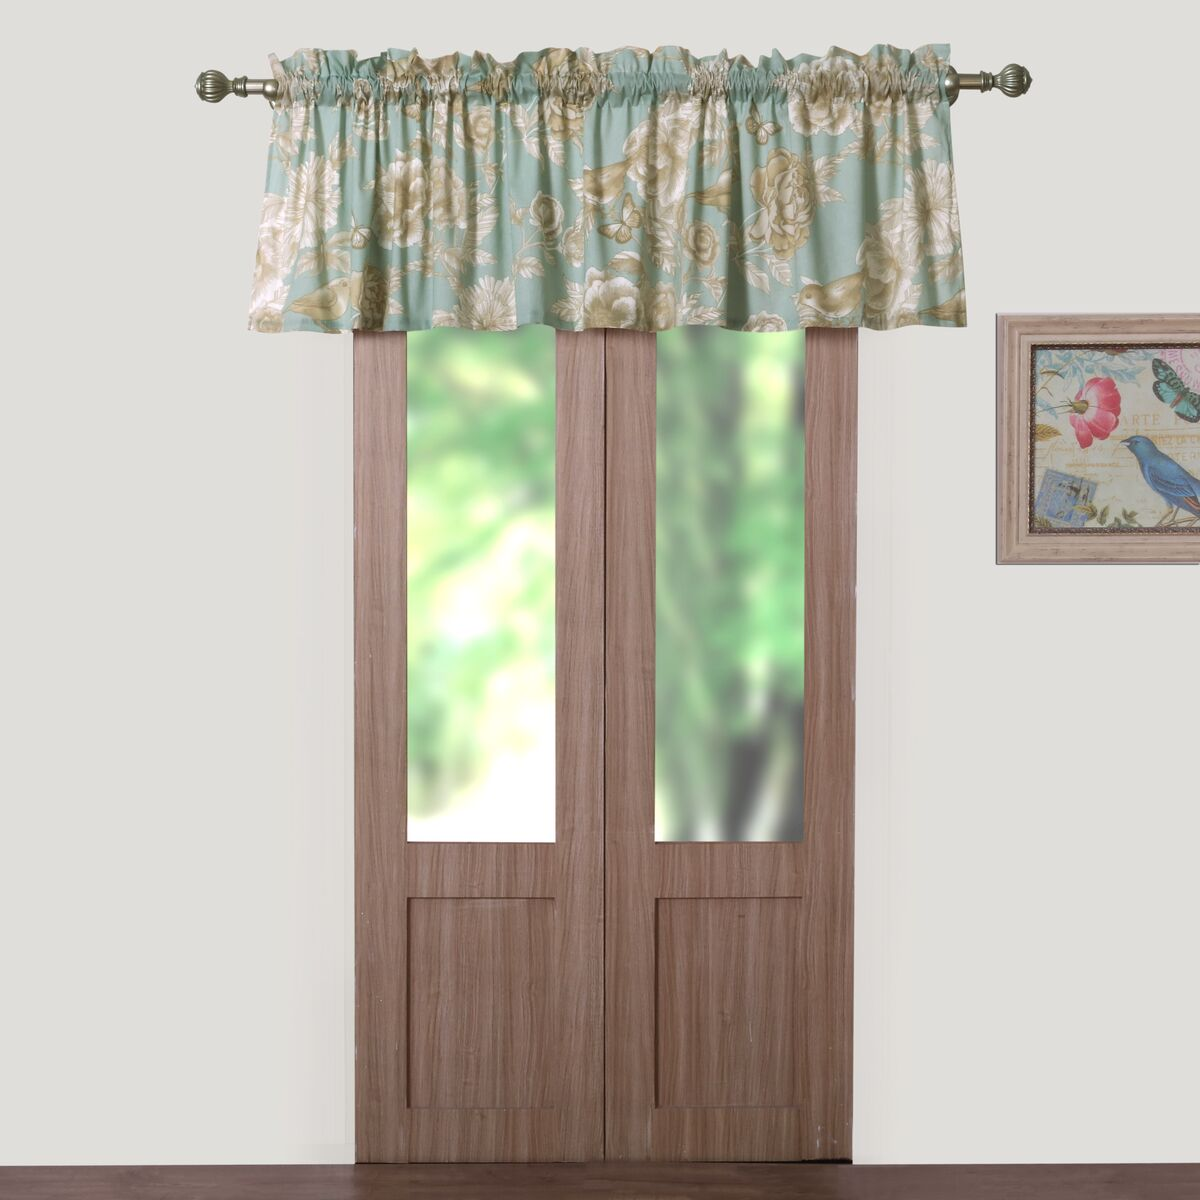 Naomi Spa Window Valance